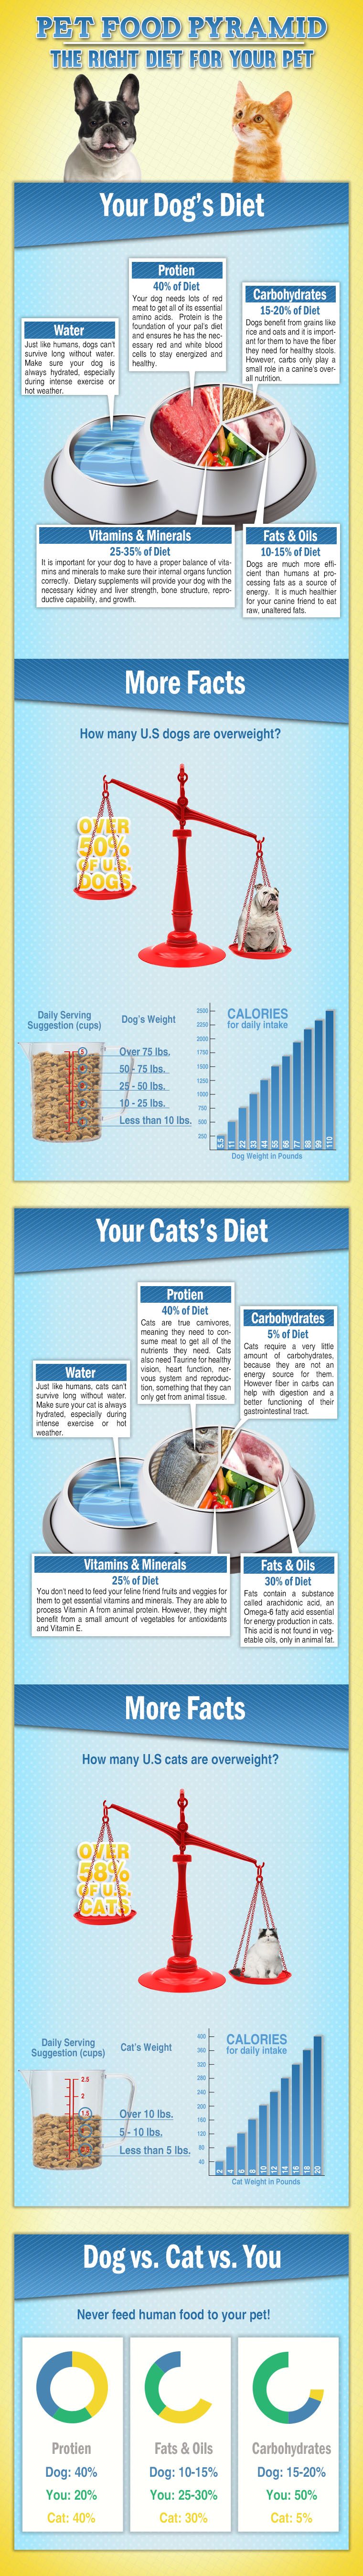 Pet Food Diet Pyramid for Dogs and Cats